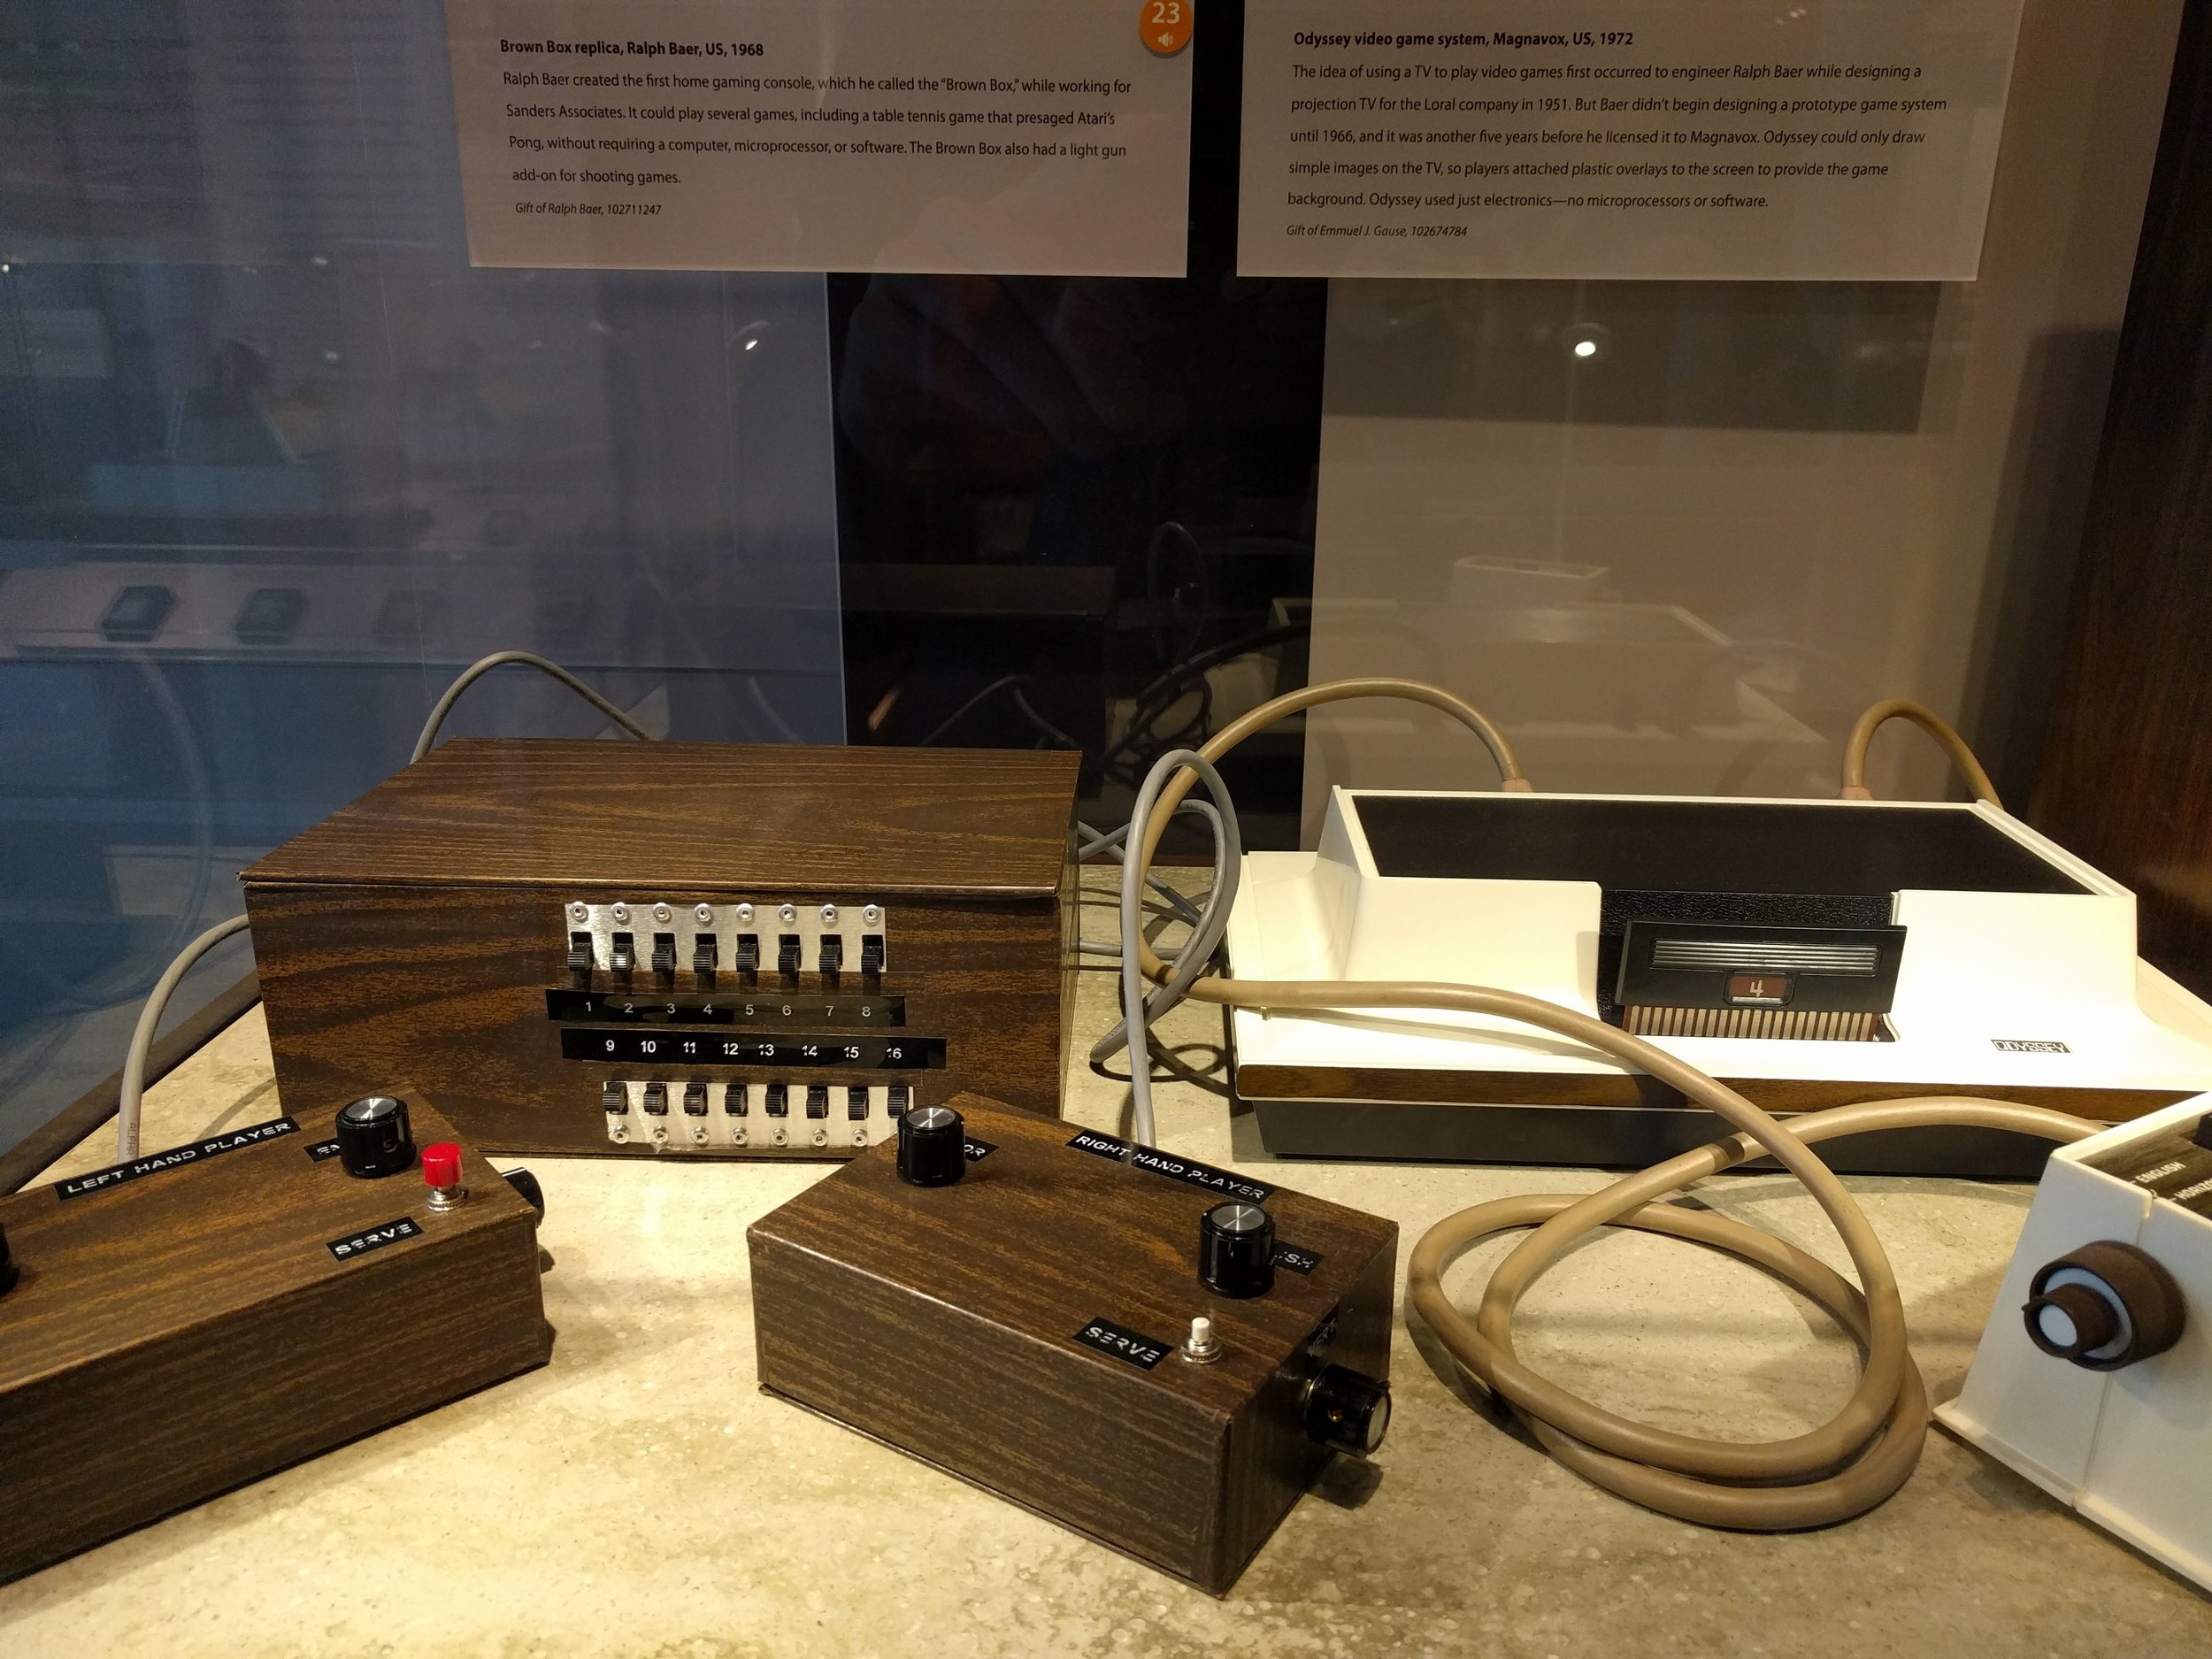 A replica of a 1968 game console. Nice finish!